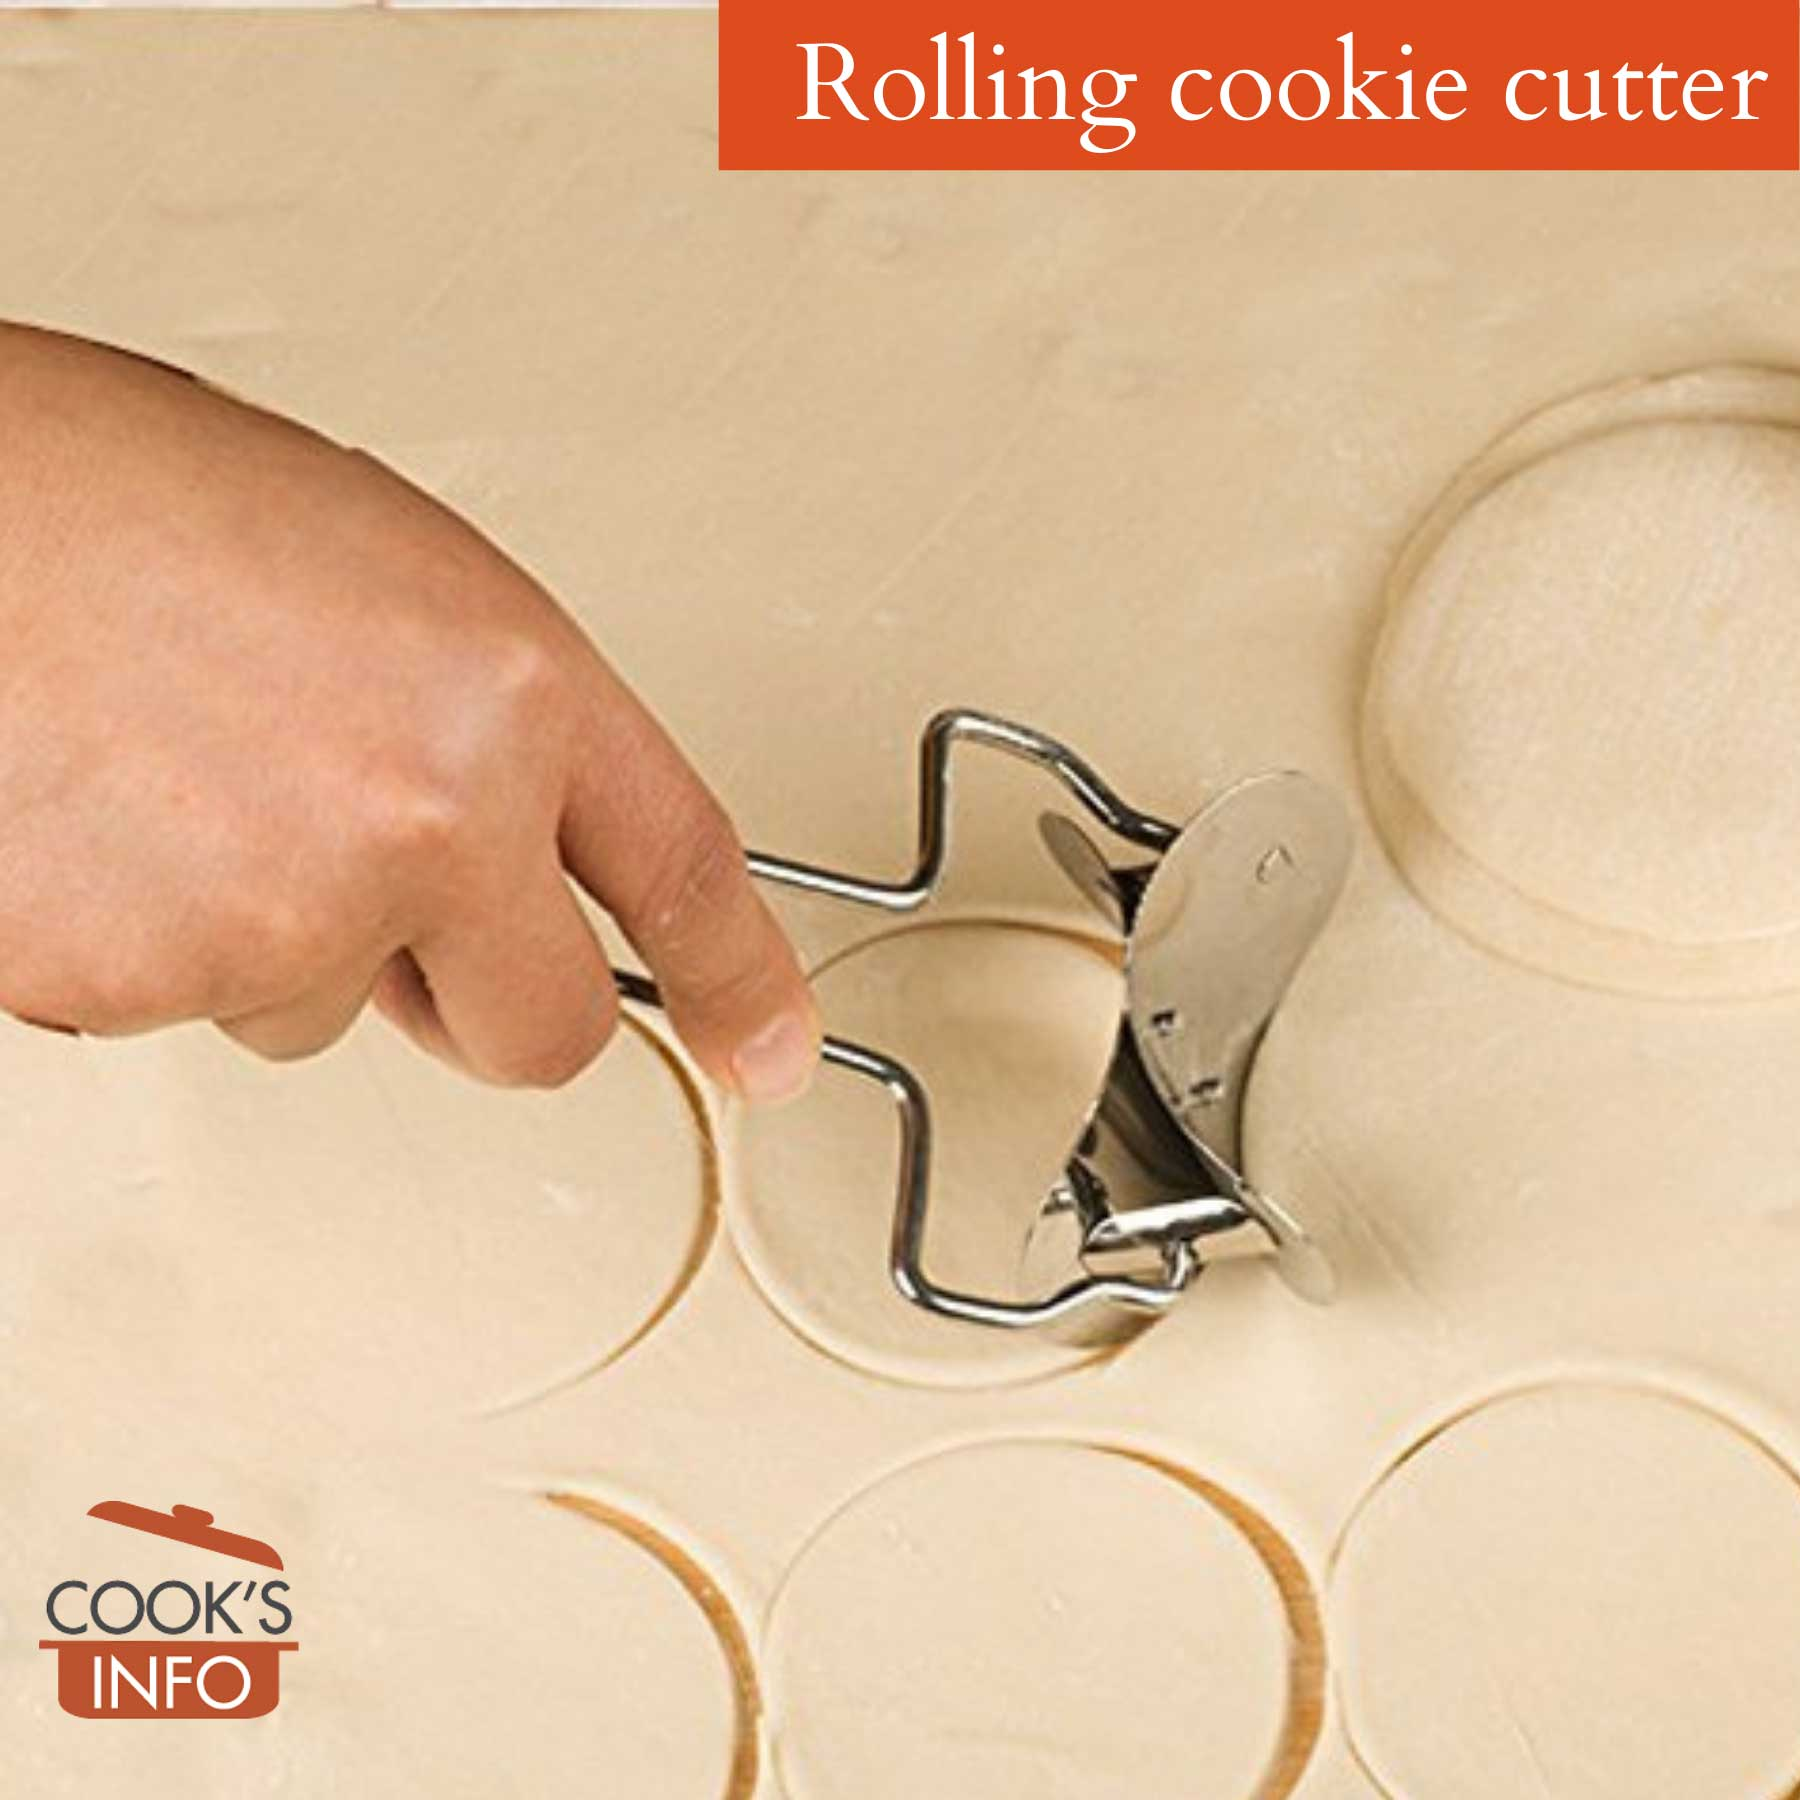 Rolling cookie / dough cutter